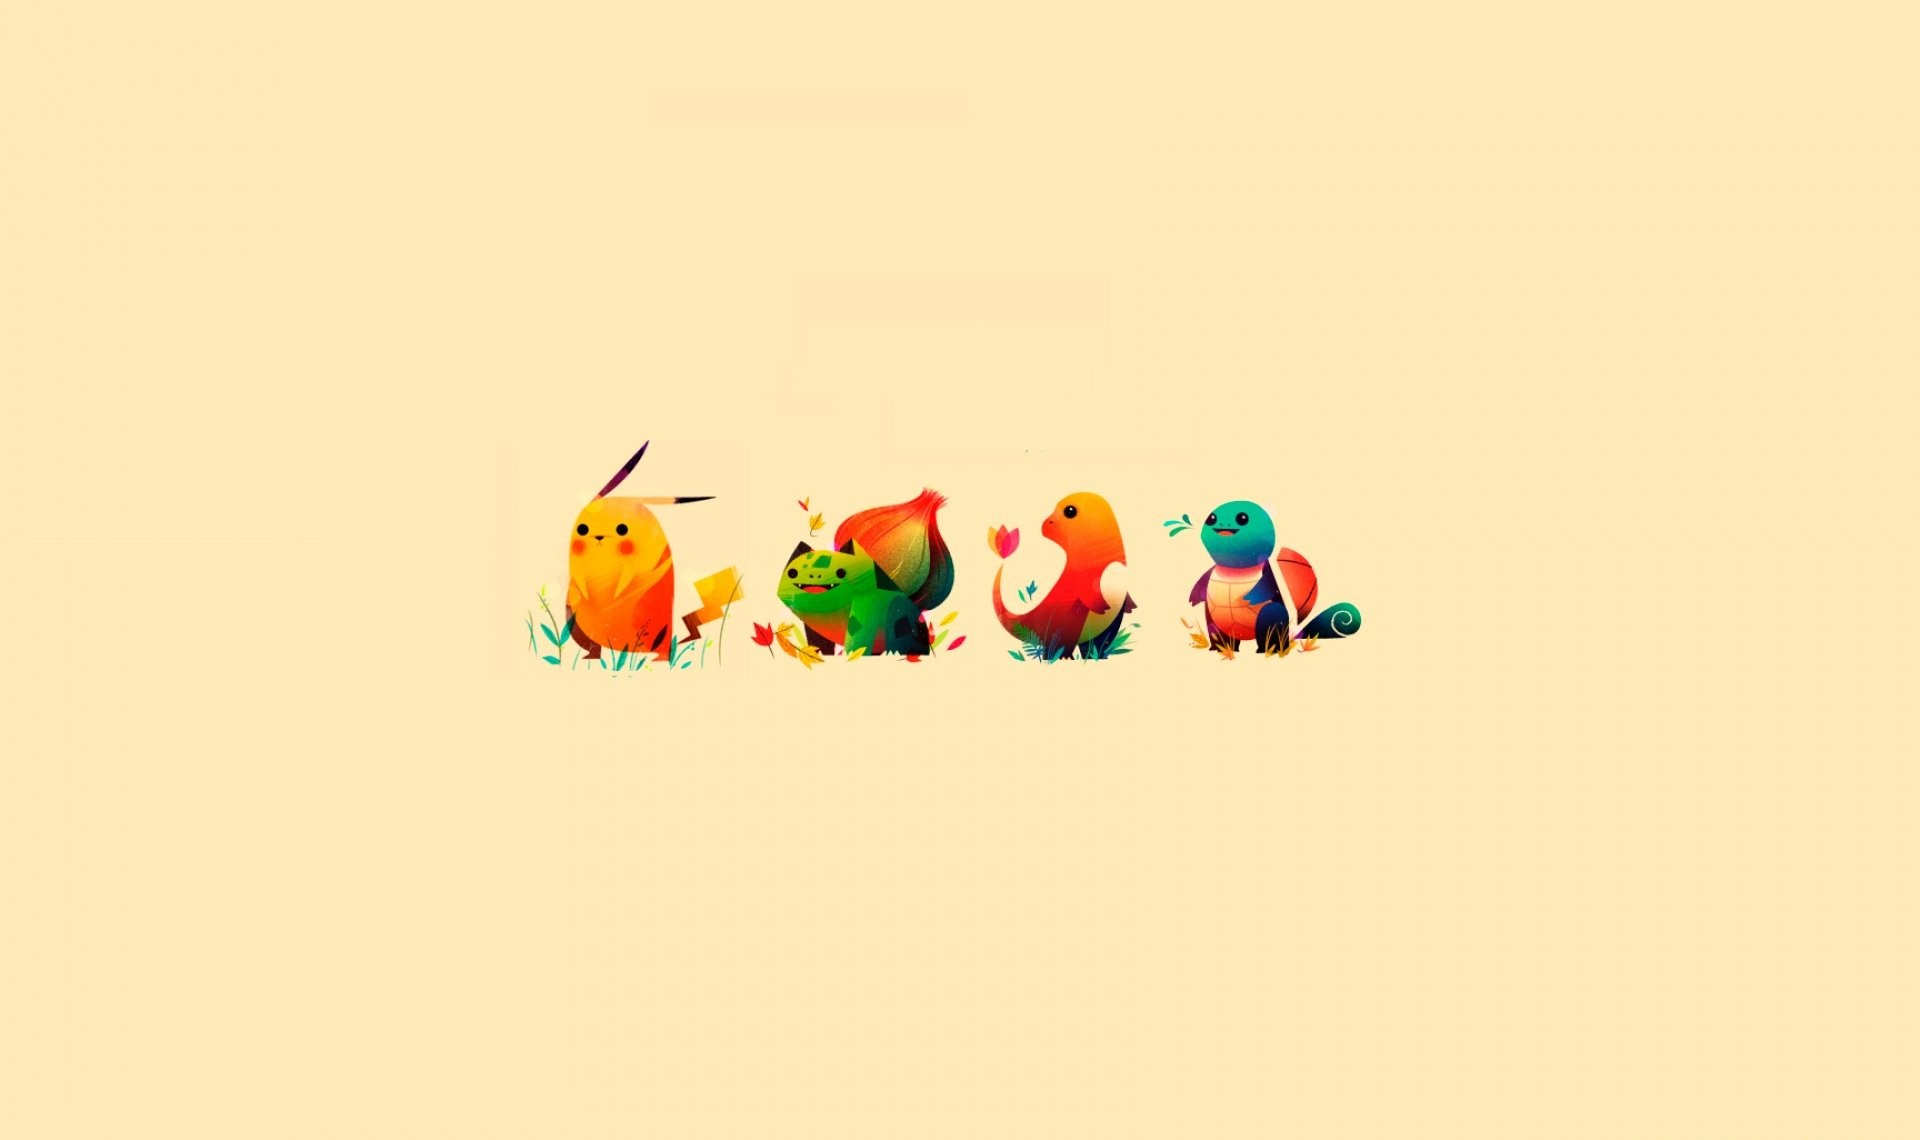 1920x1140 Pokemon Bulbasaur Pikachu Charmander Squirtle; black background ...